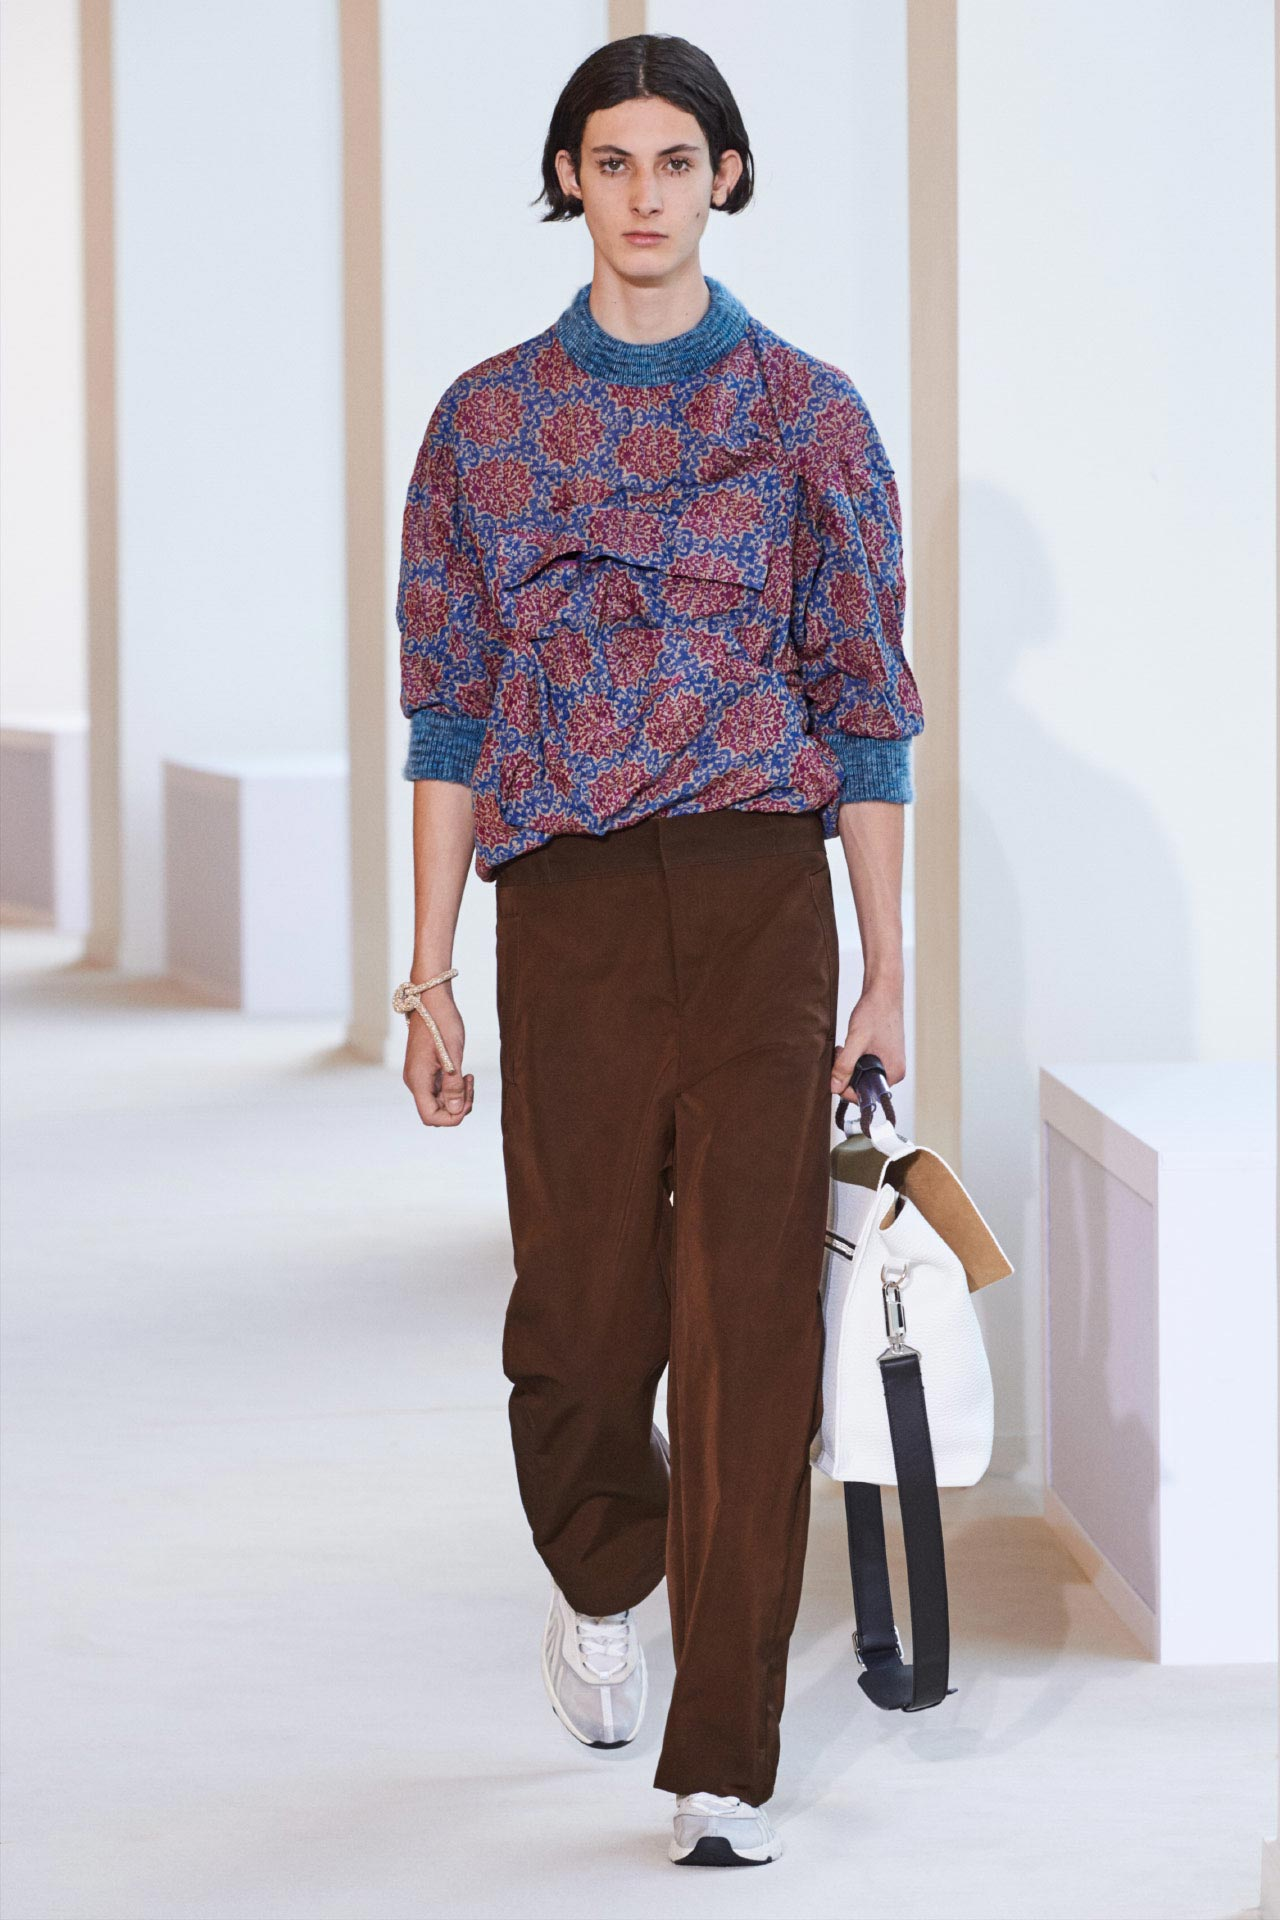 Look Spring/Summer, image 37